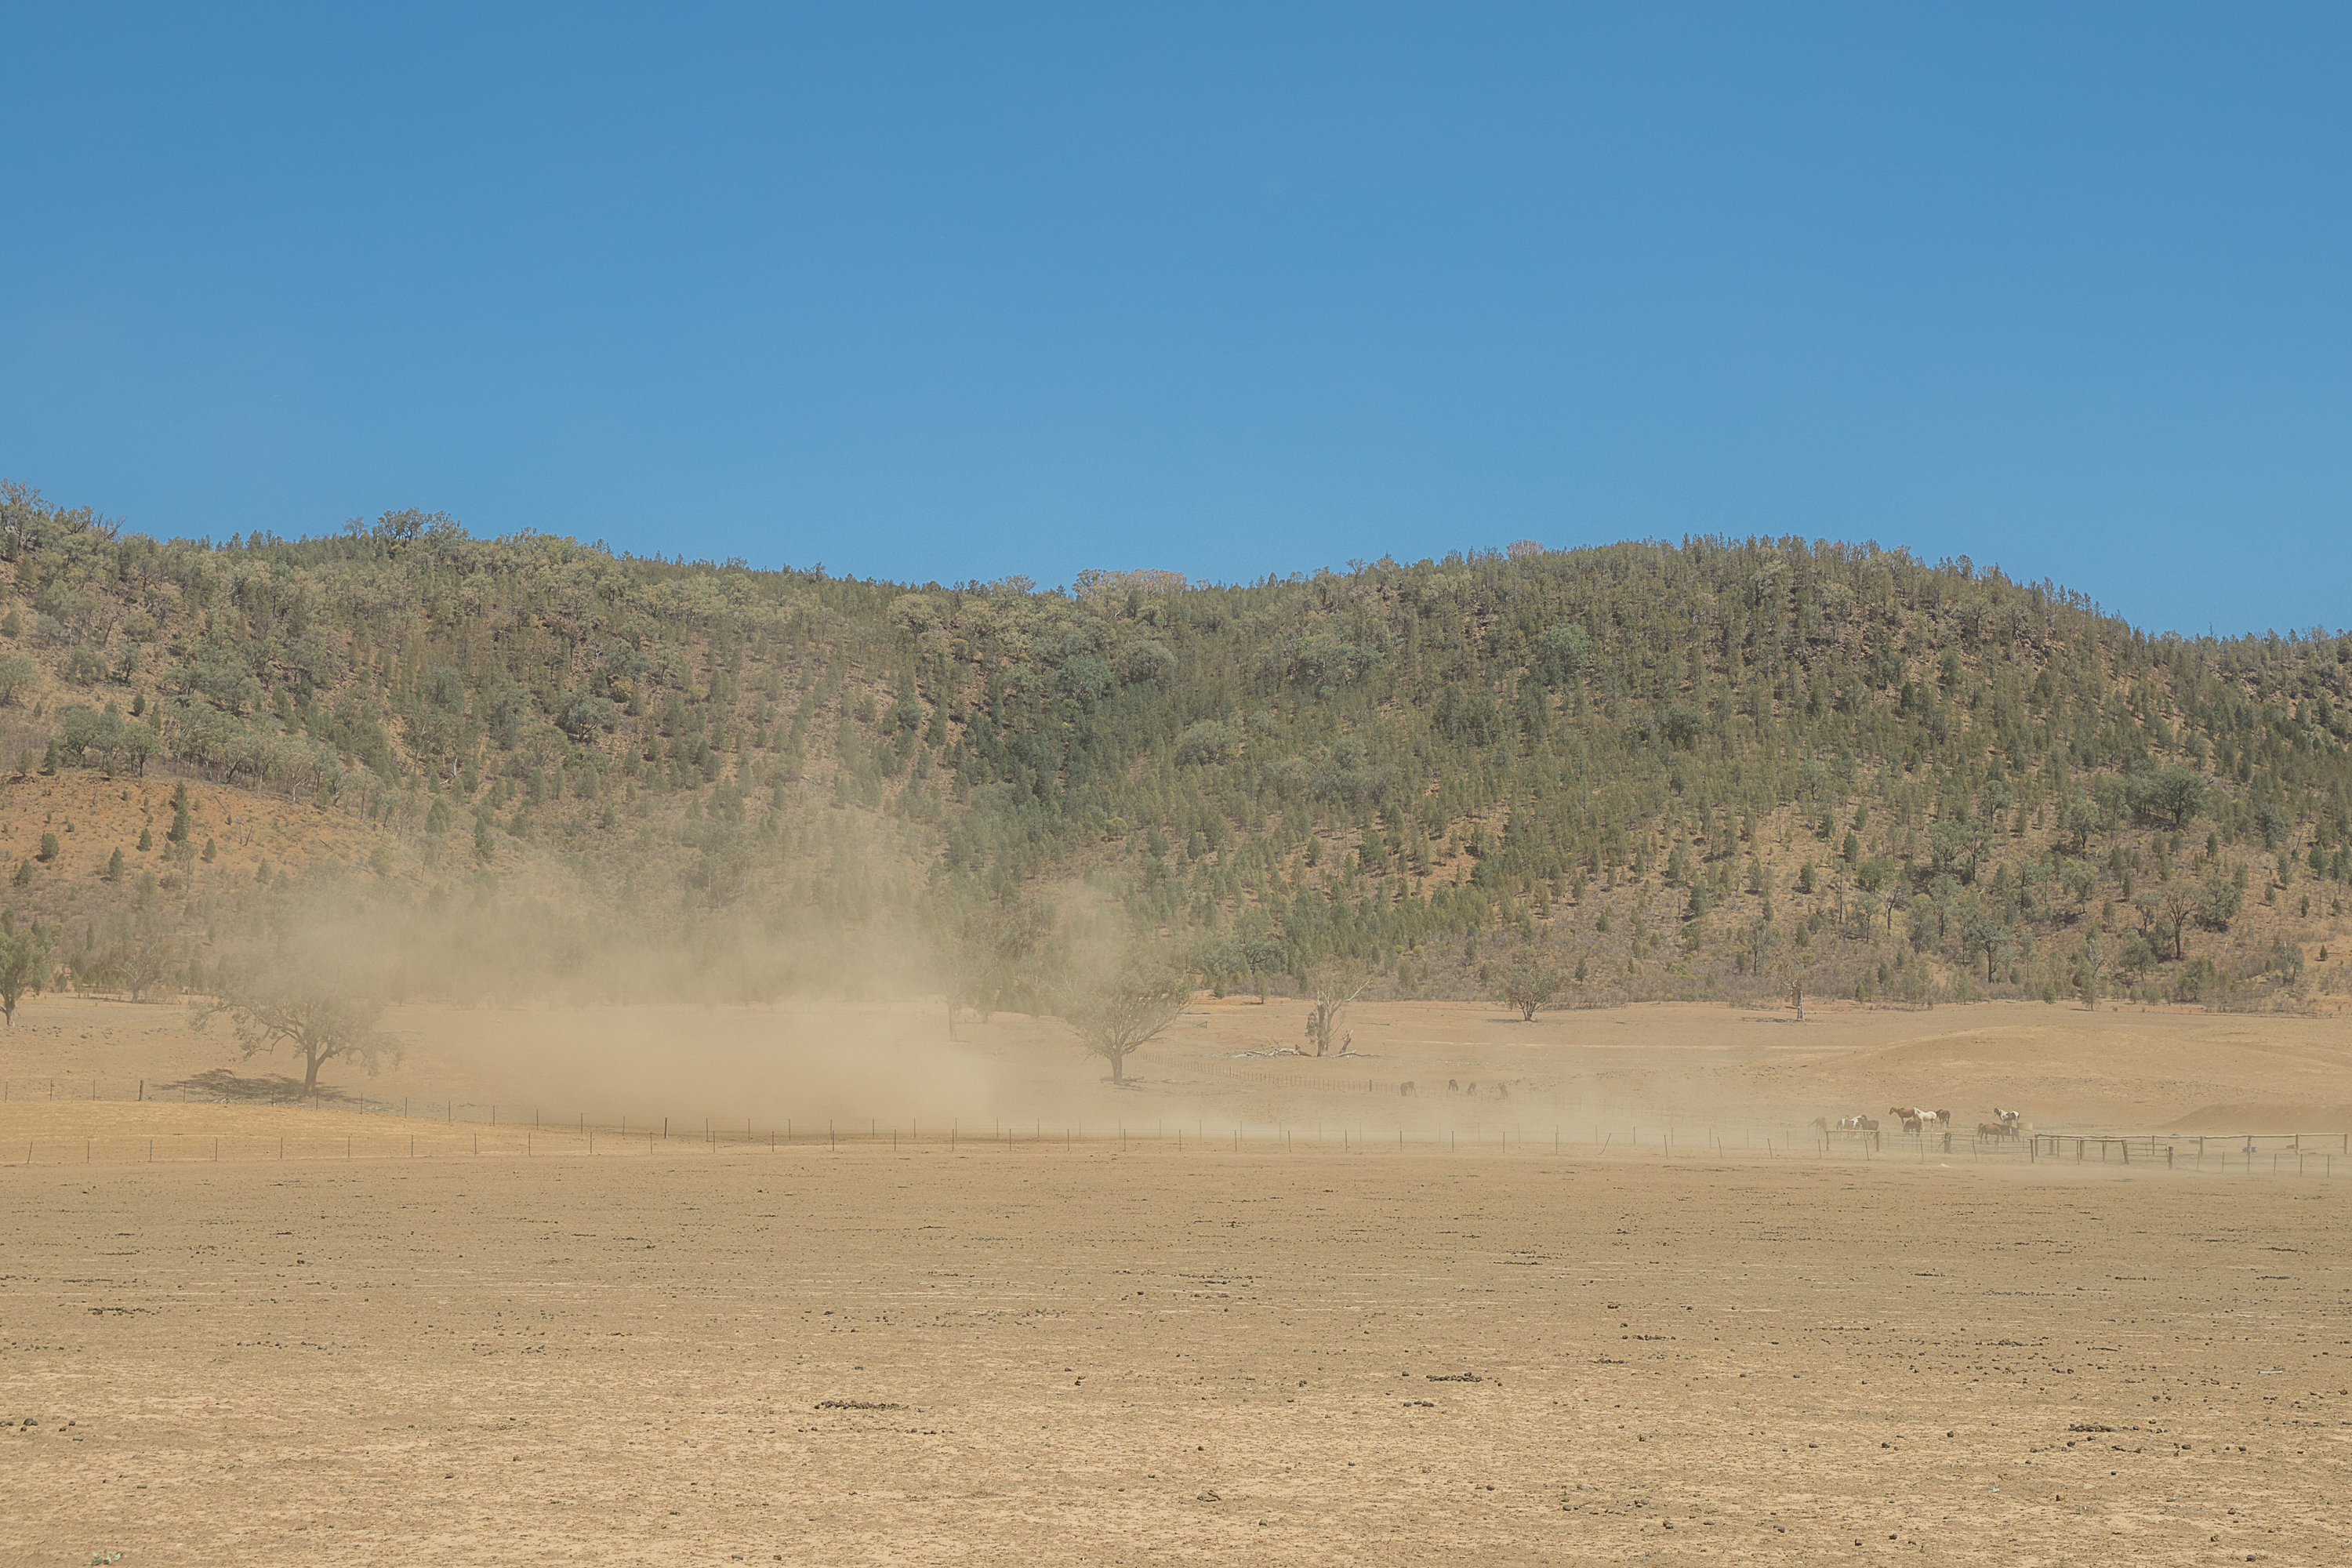 Upper Horton in the Gwydir Shire has been experiencing dust storms at least weekly.